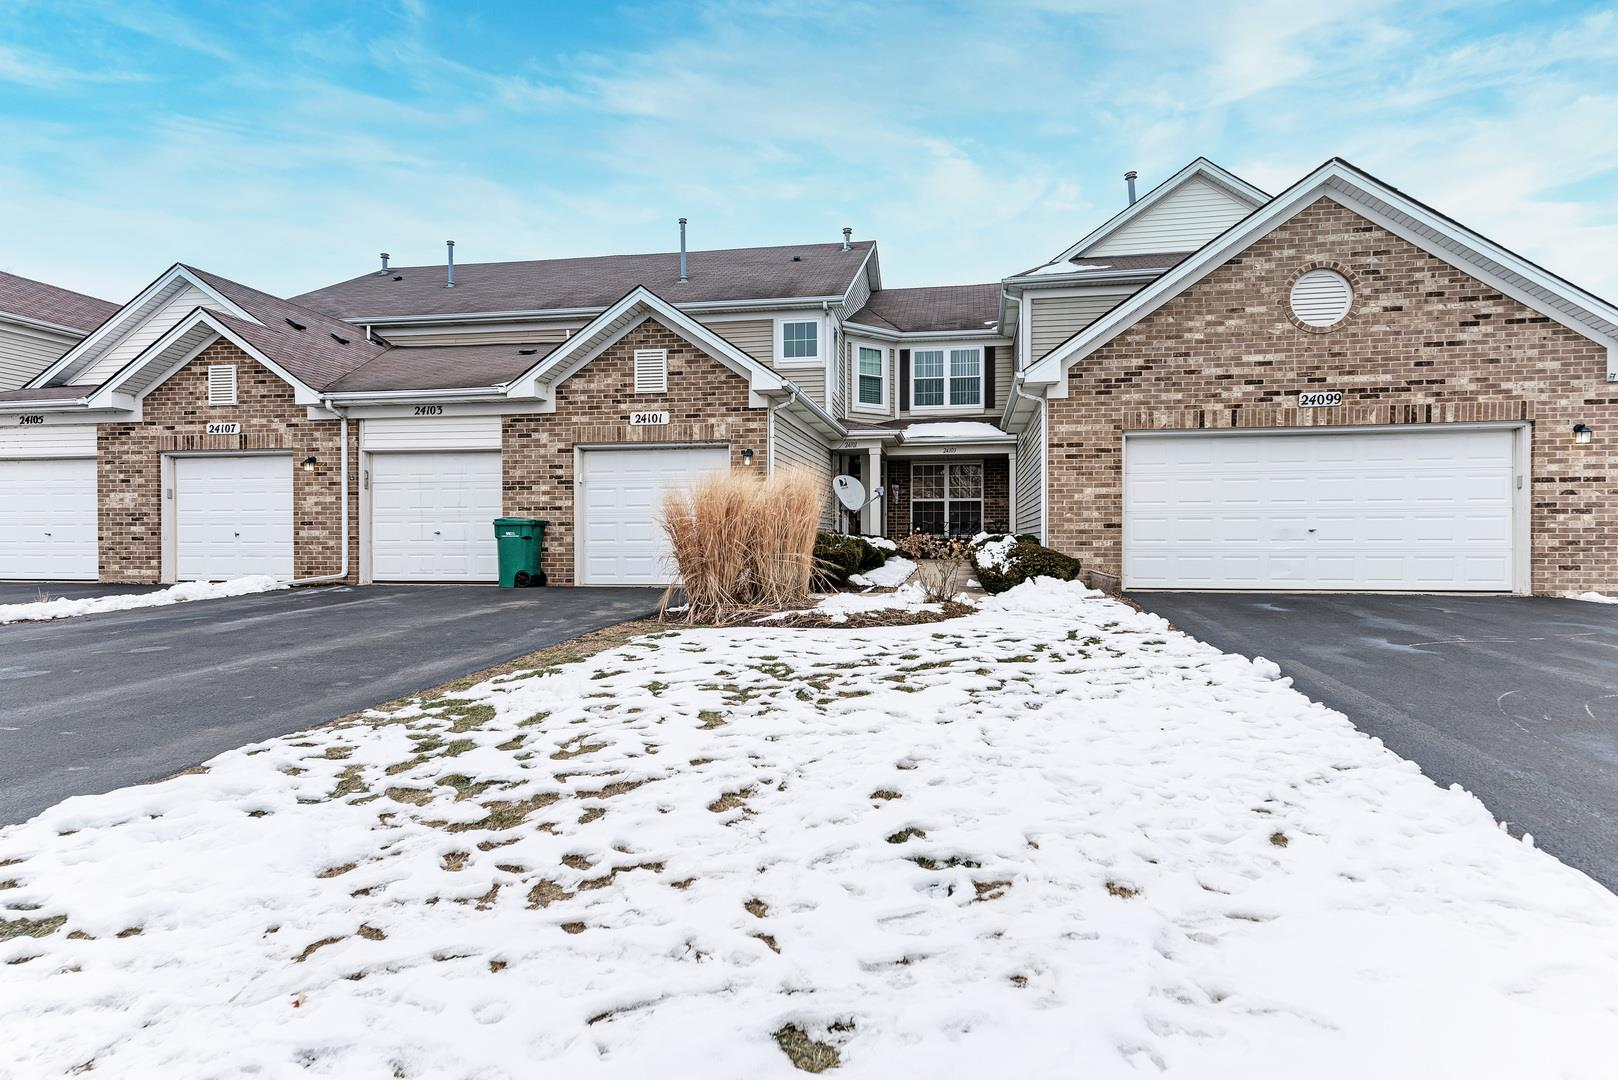 24101 PEAR TREE Circle, Plainfield, IL 60585 - #: 10969945